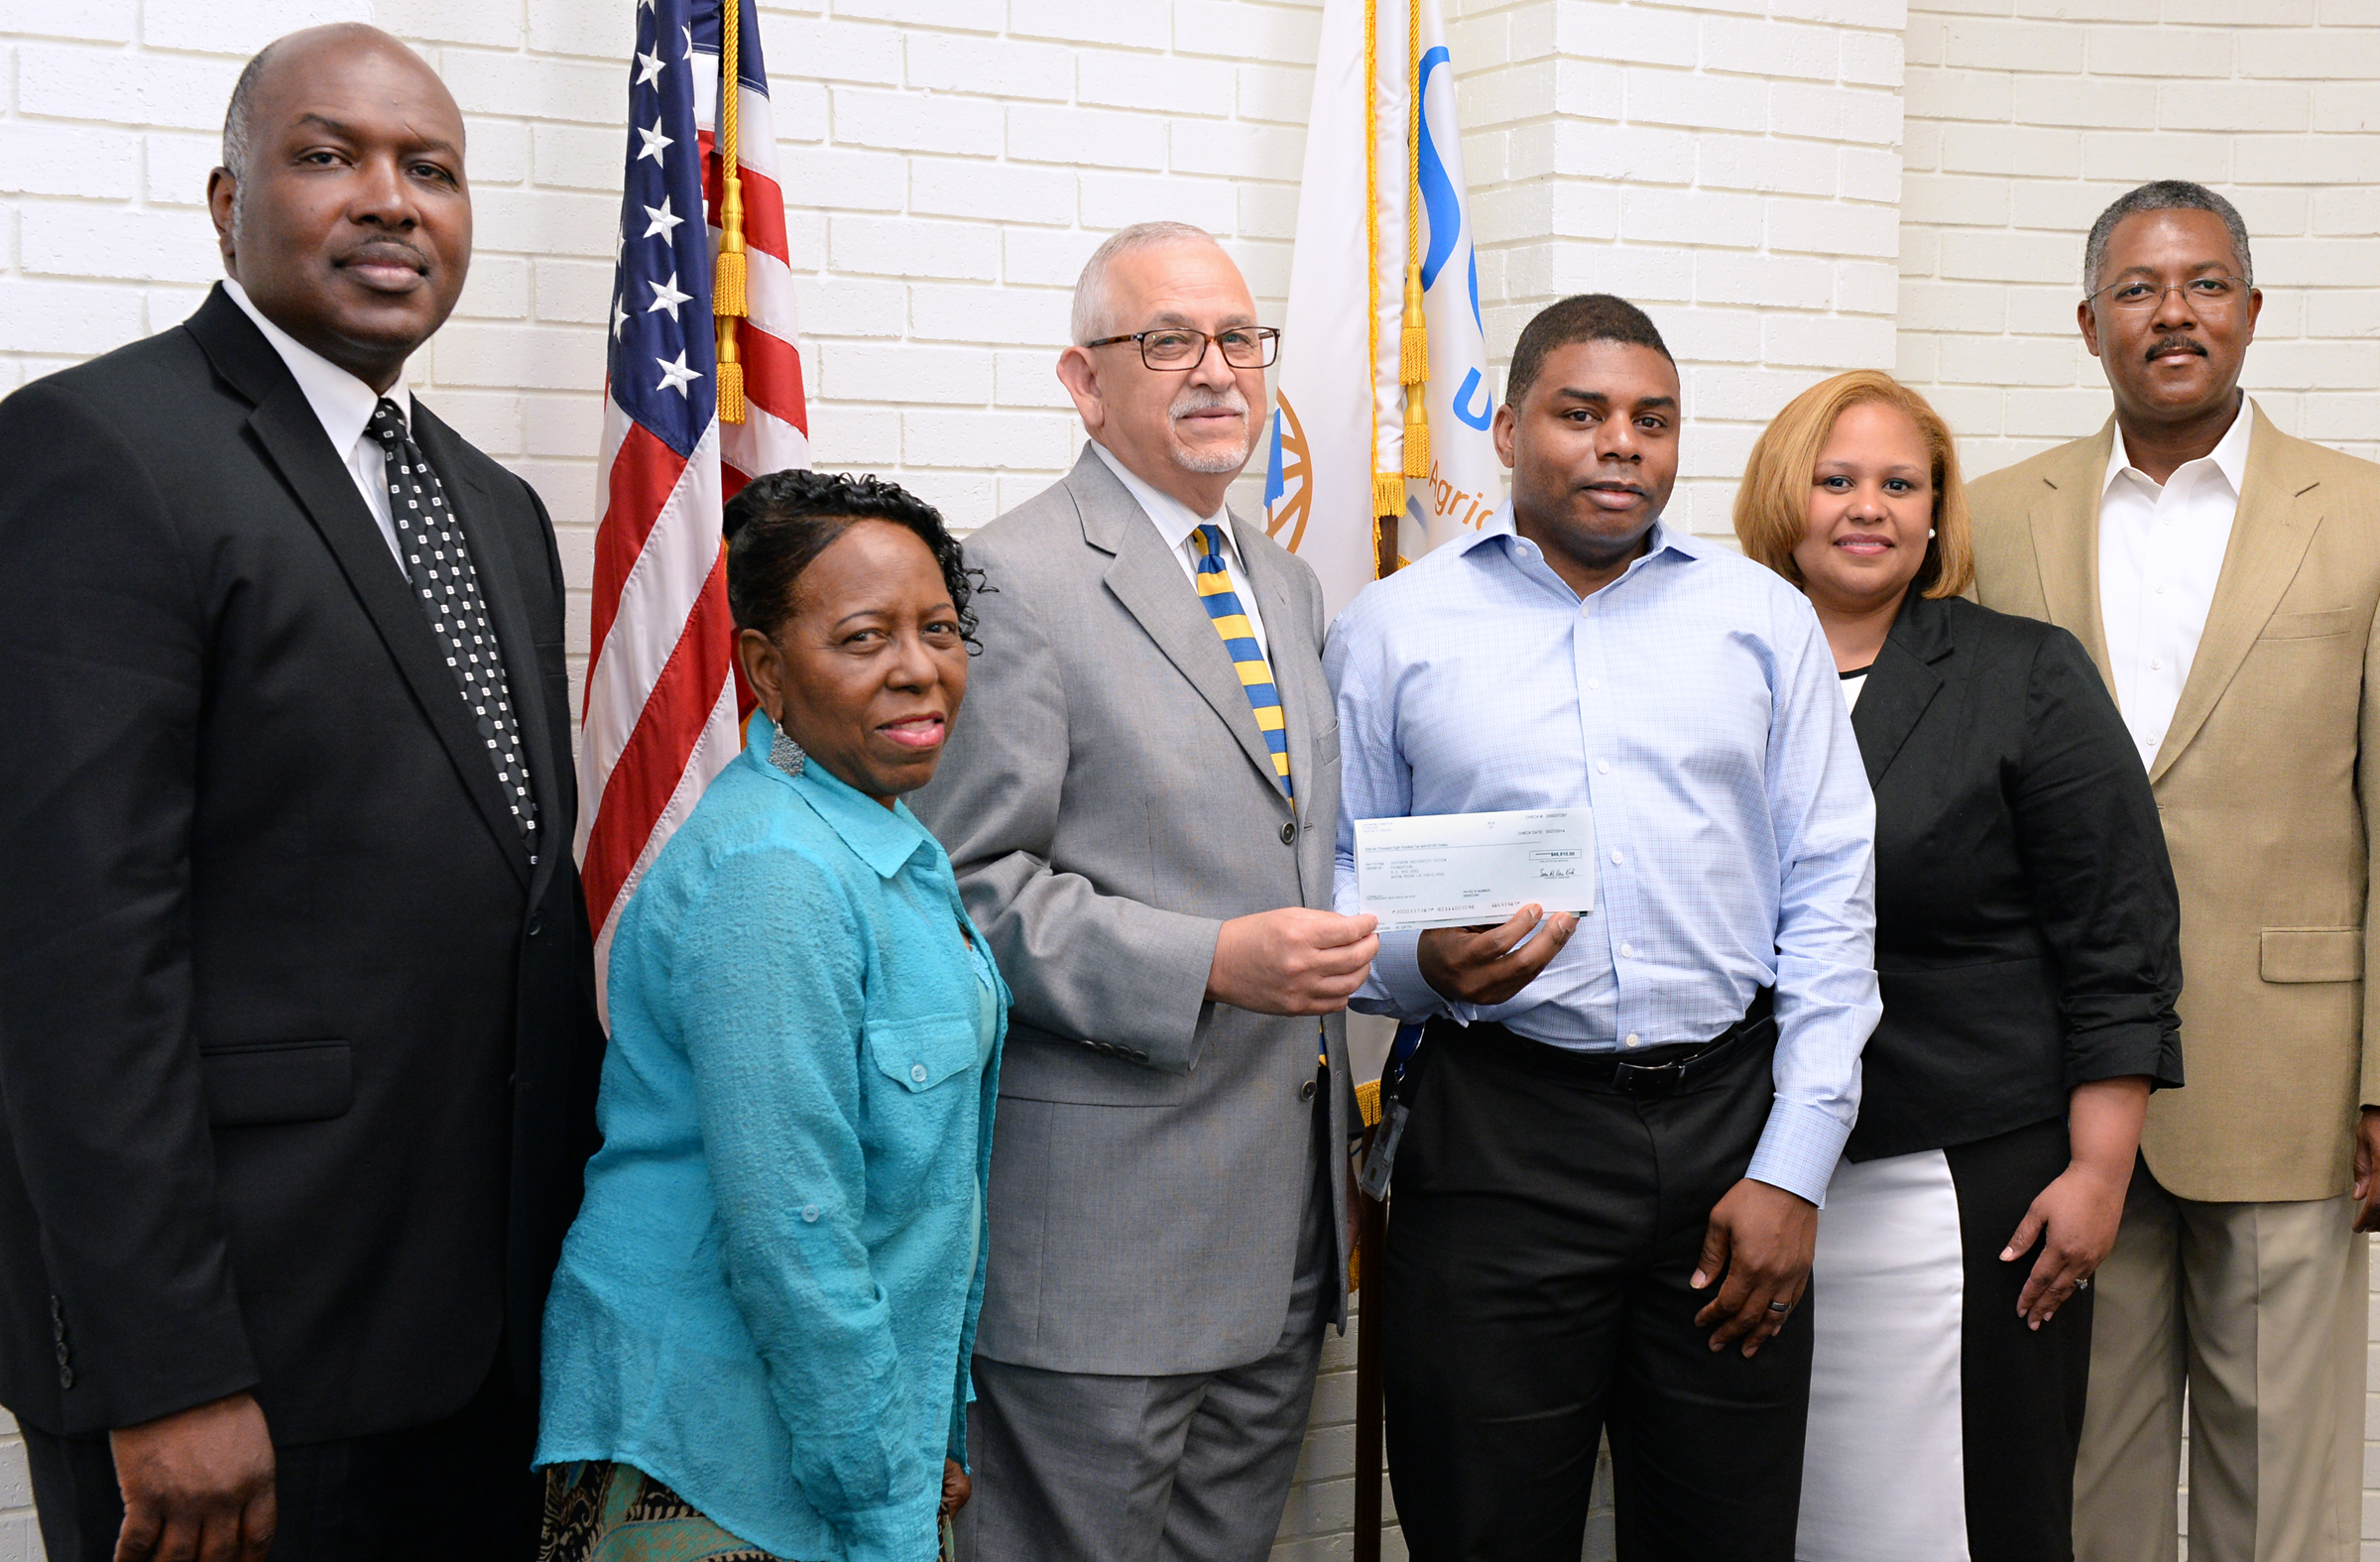 The ExxonMobil check presentation included from left, ExxonMobil's Wilbert Ferdinand, SU College of Engineering representative Janifer Peters, SUBR Chancellor Dr. James L. Llorens, Shabaka Gibson, and Claudette Bradford, both with ExxonMobil, and Phil Smith, with the SU Foundation.